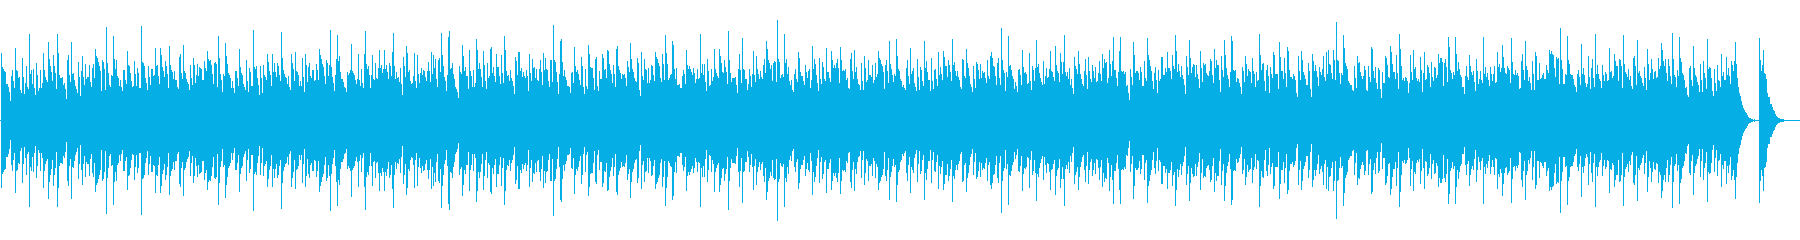 Japanese-style orthodox festival music's reproduced waveform